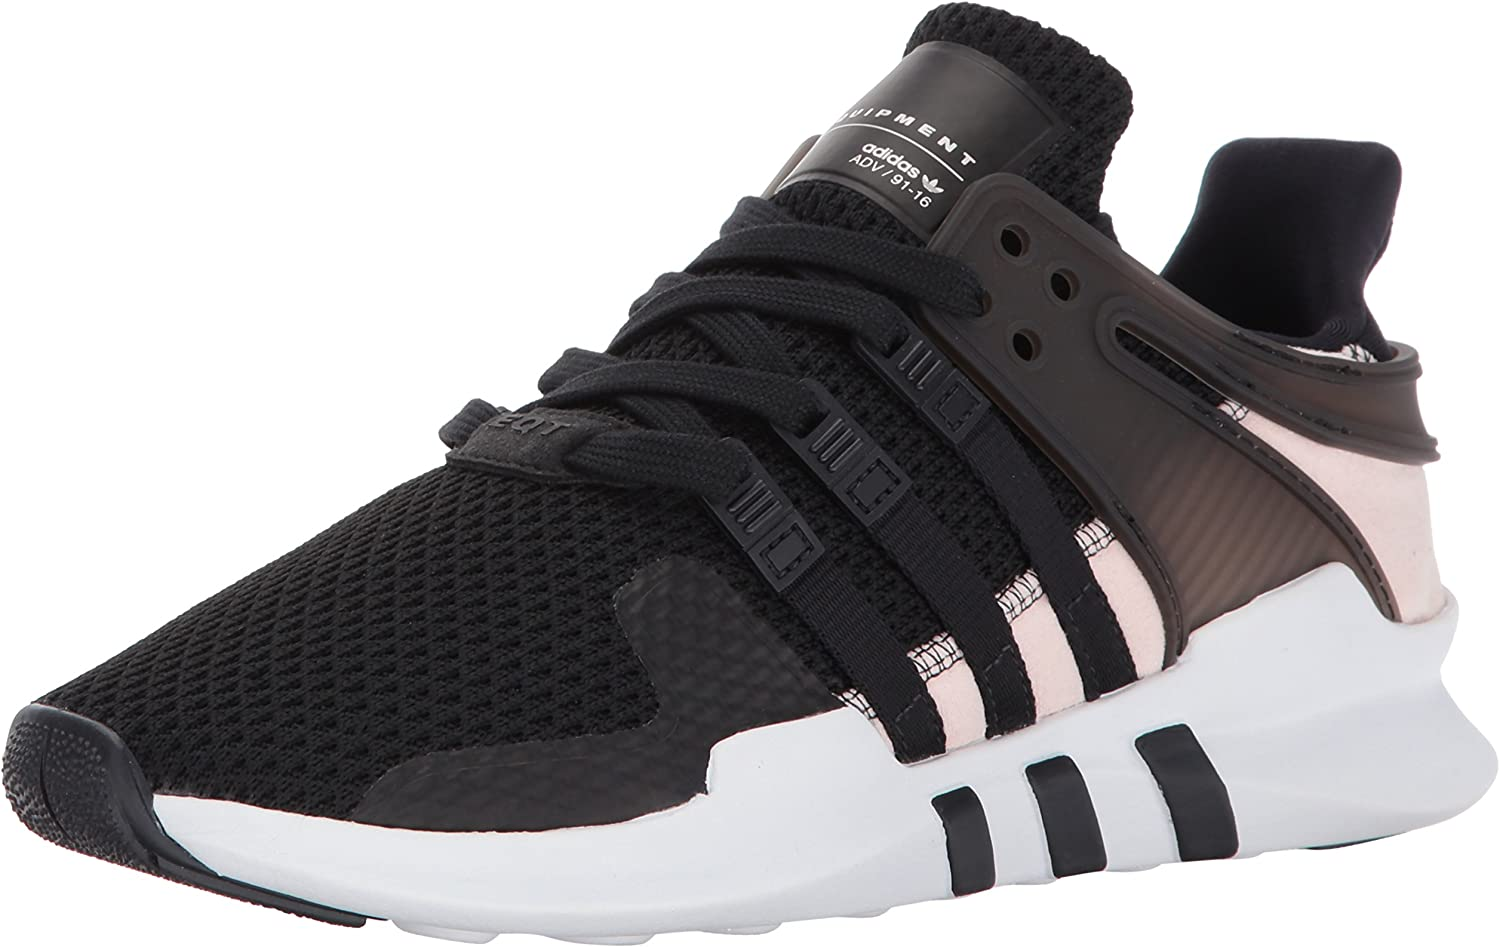 Adidas Originals Women's EQT Support ADV shoes, Core Black Core Black Footwear White, 8.5 M US